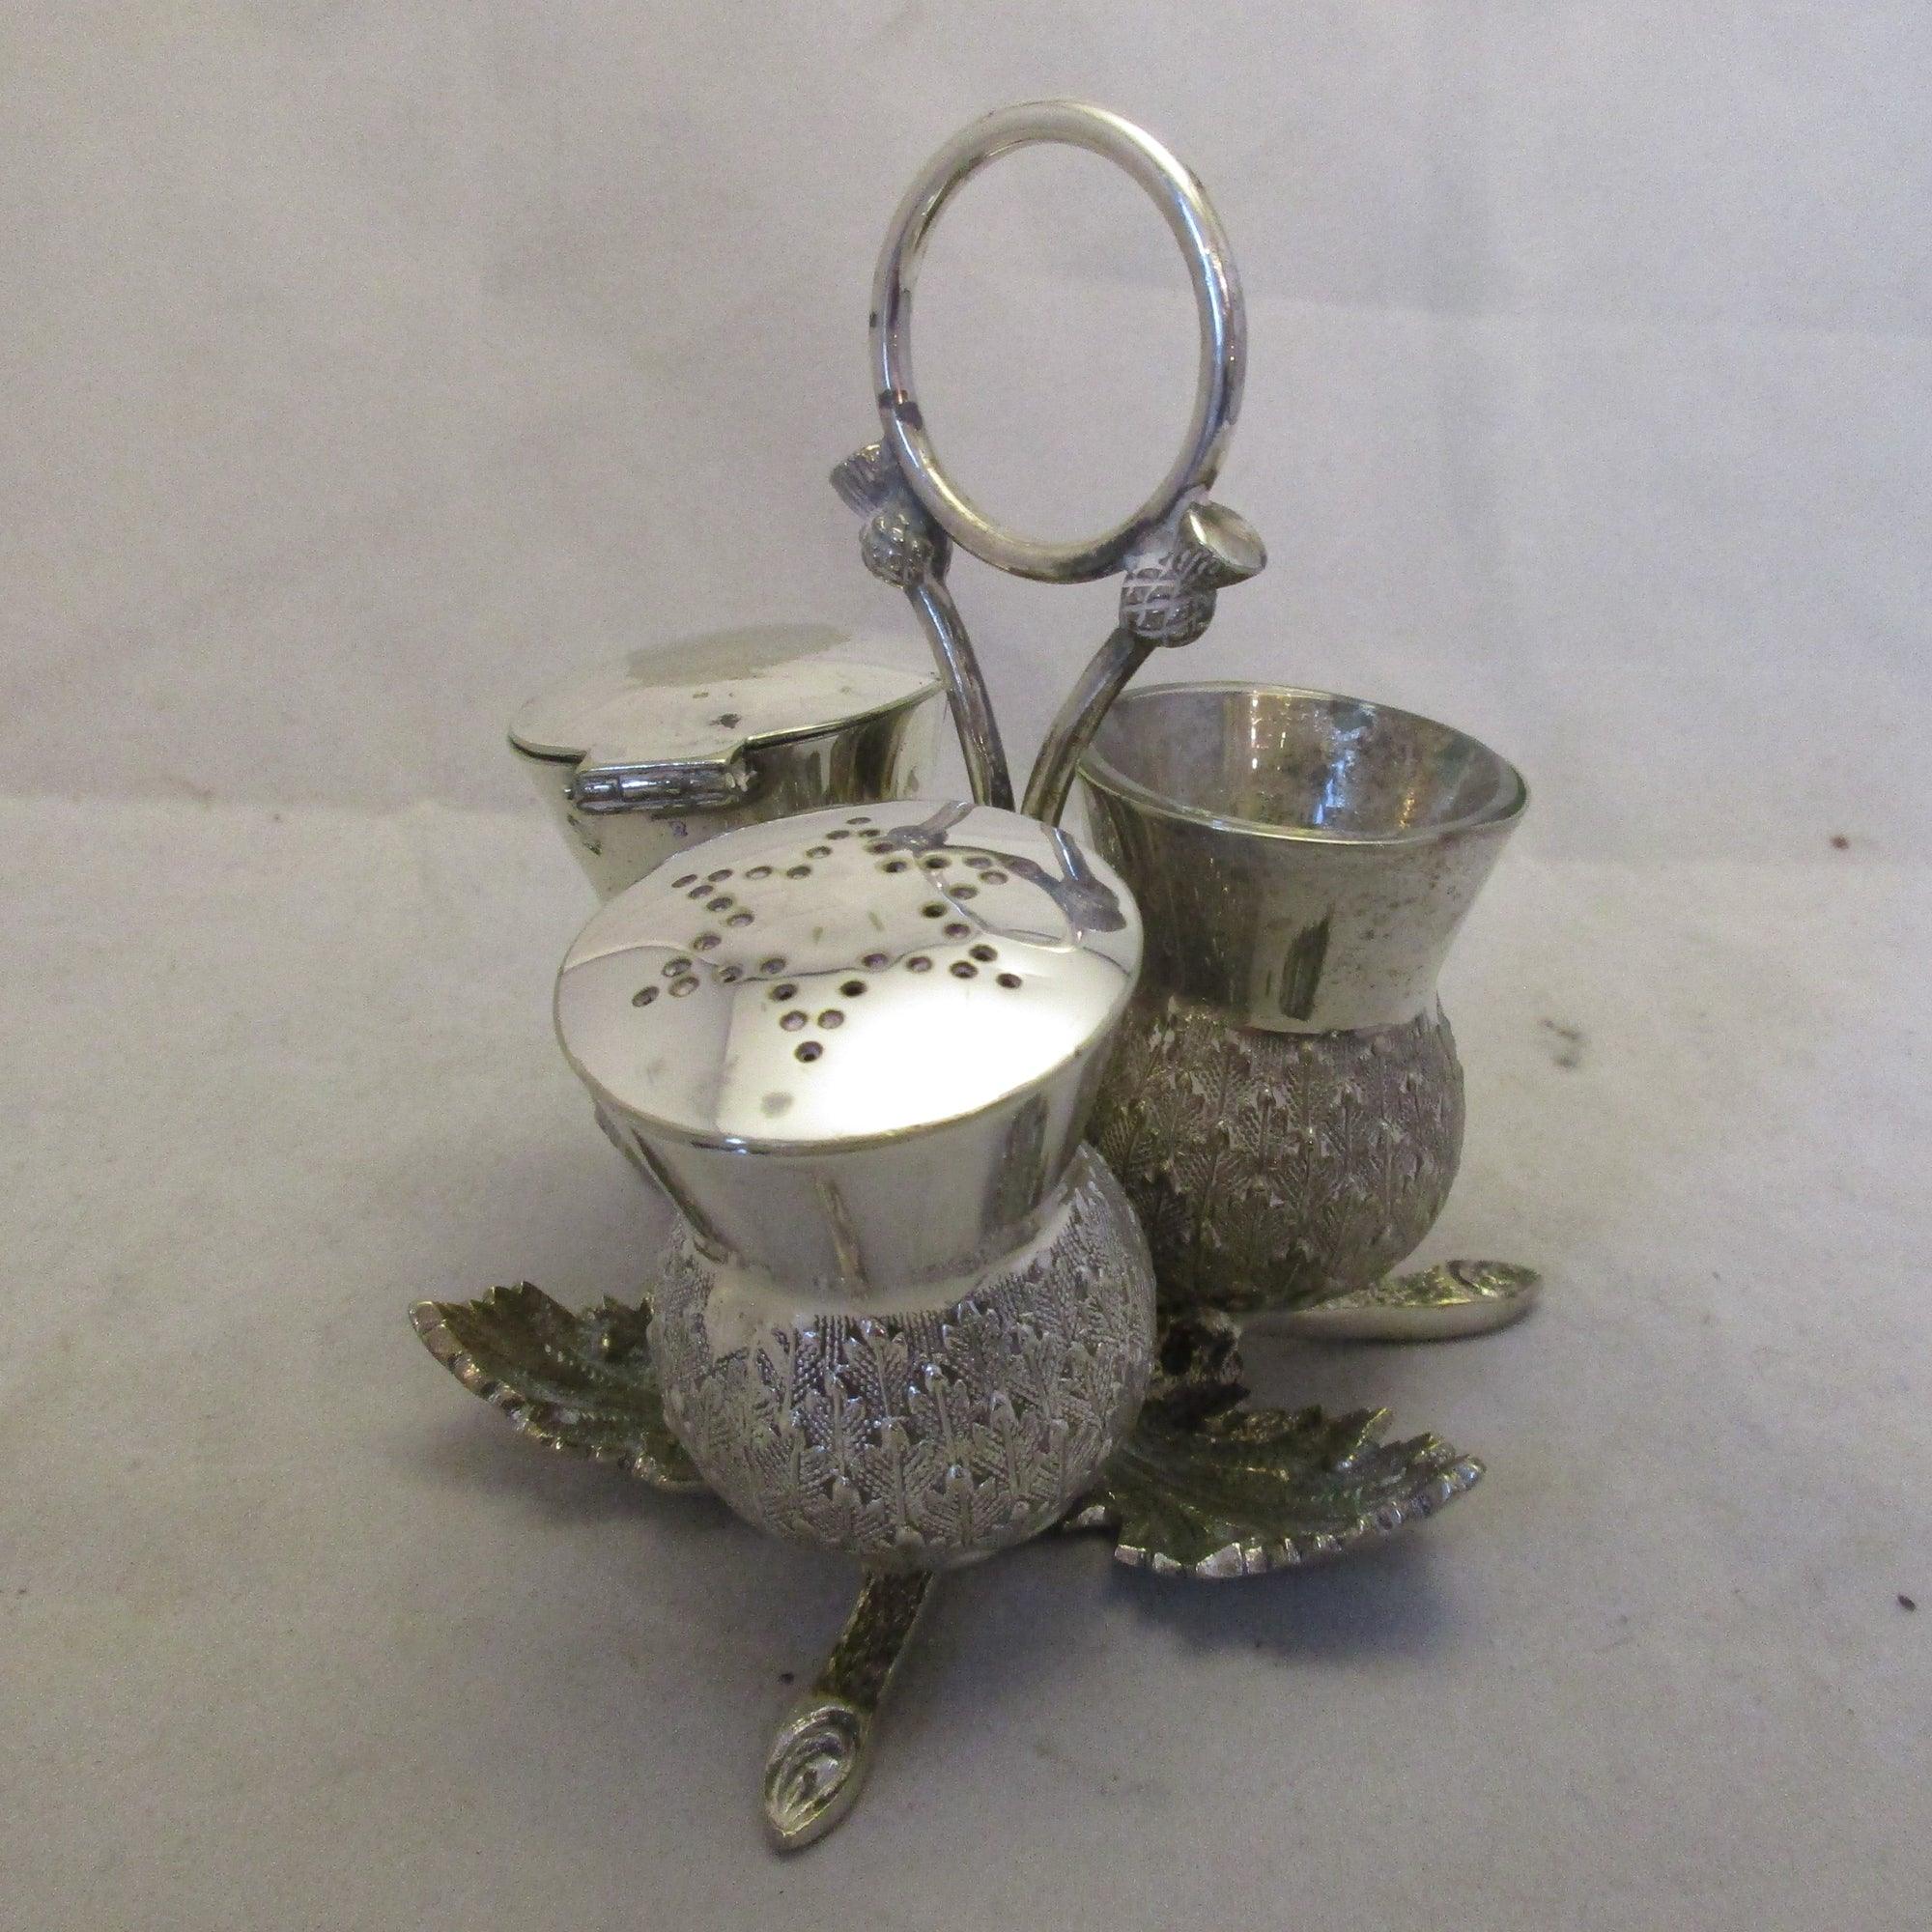 Silver plated Scottish Thistle Cruet Set Antique Edwardian c1910.